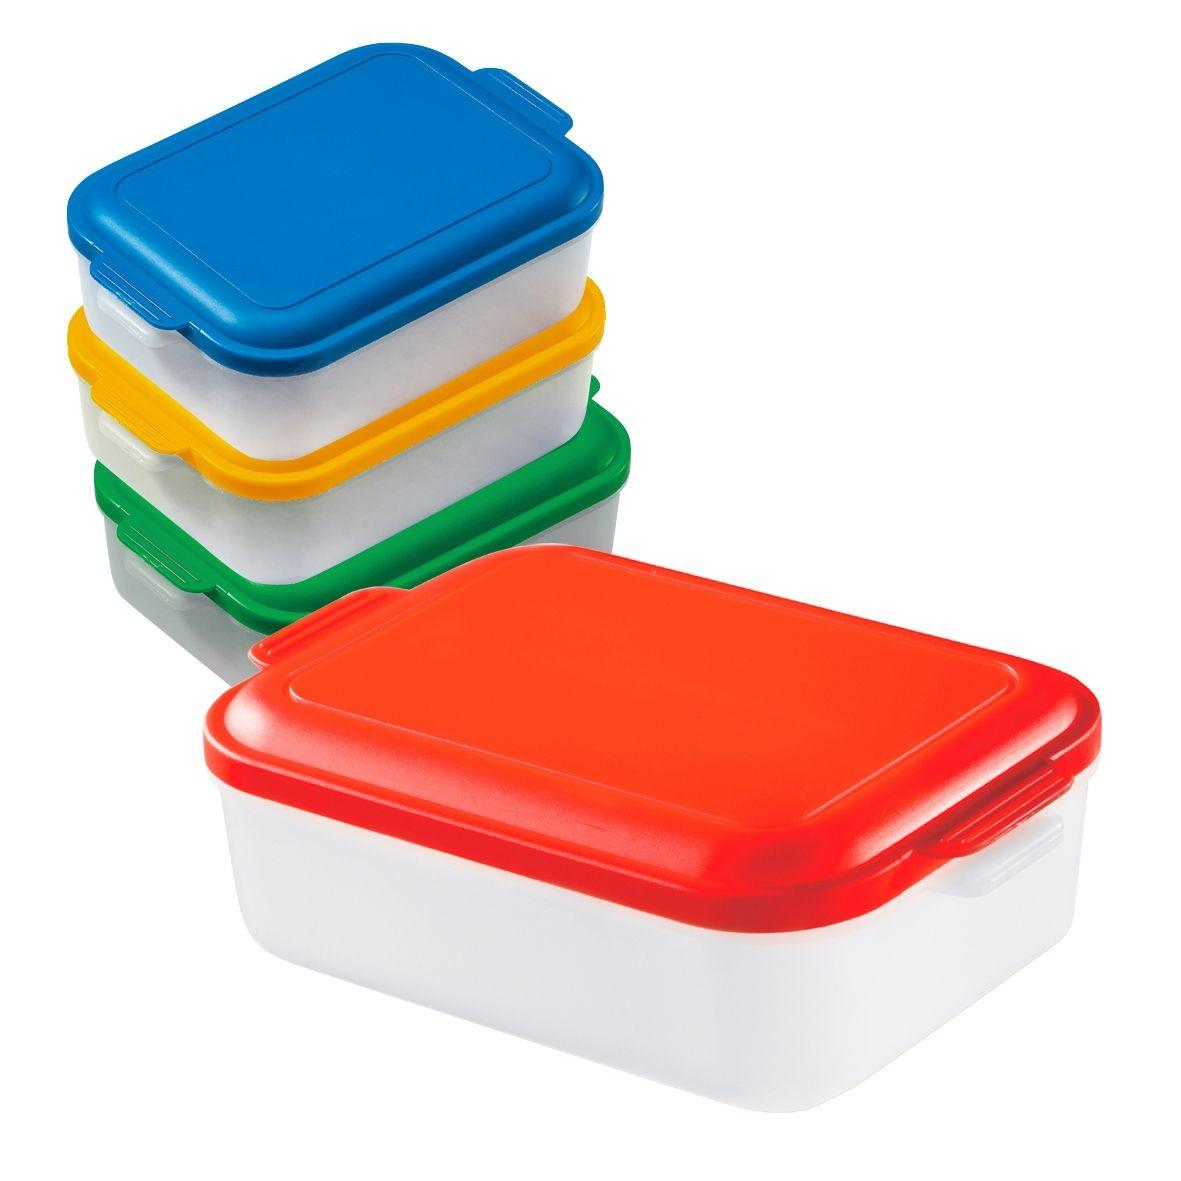 Printed Food Storage Containers Promotional Merchandise